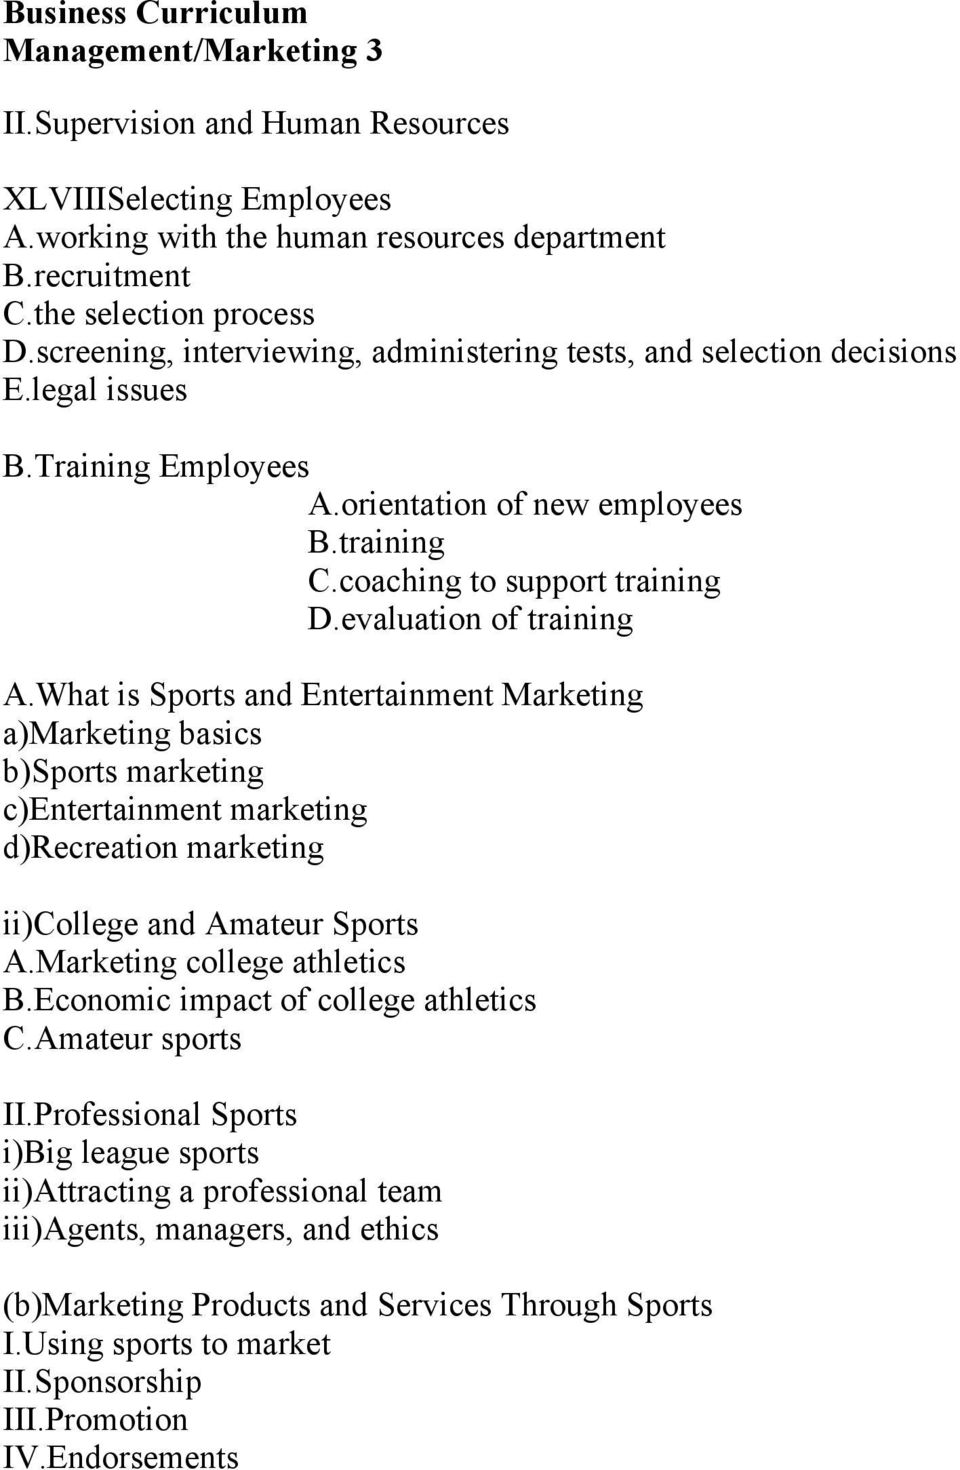 evaluation of training A.What is Sports and Entertainment Marketing a)marketing basics b)sports marketing c)entertainment marketing d)recreation marketing ii)college and Amateur Sports A.